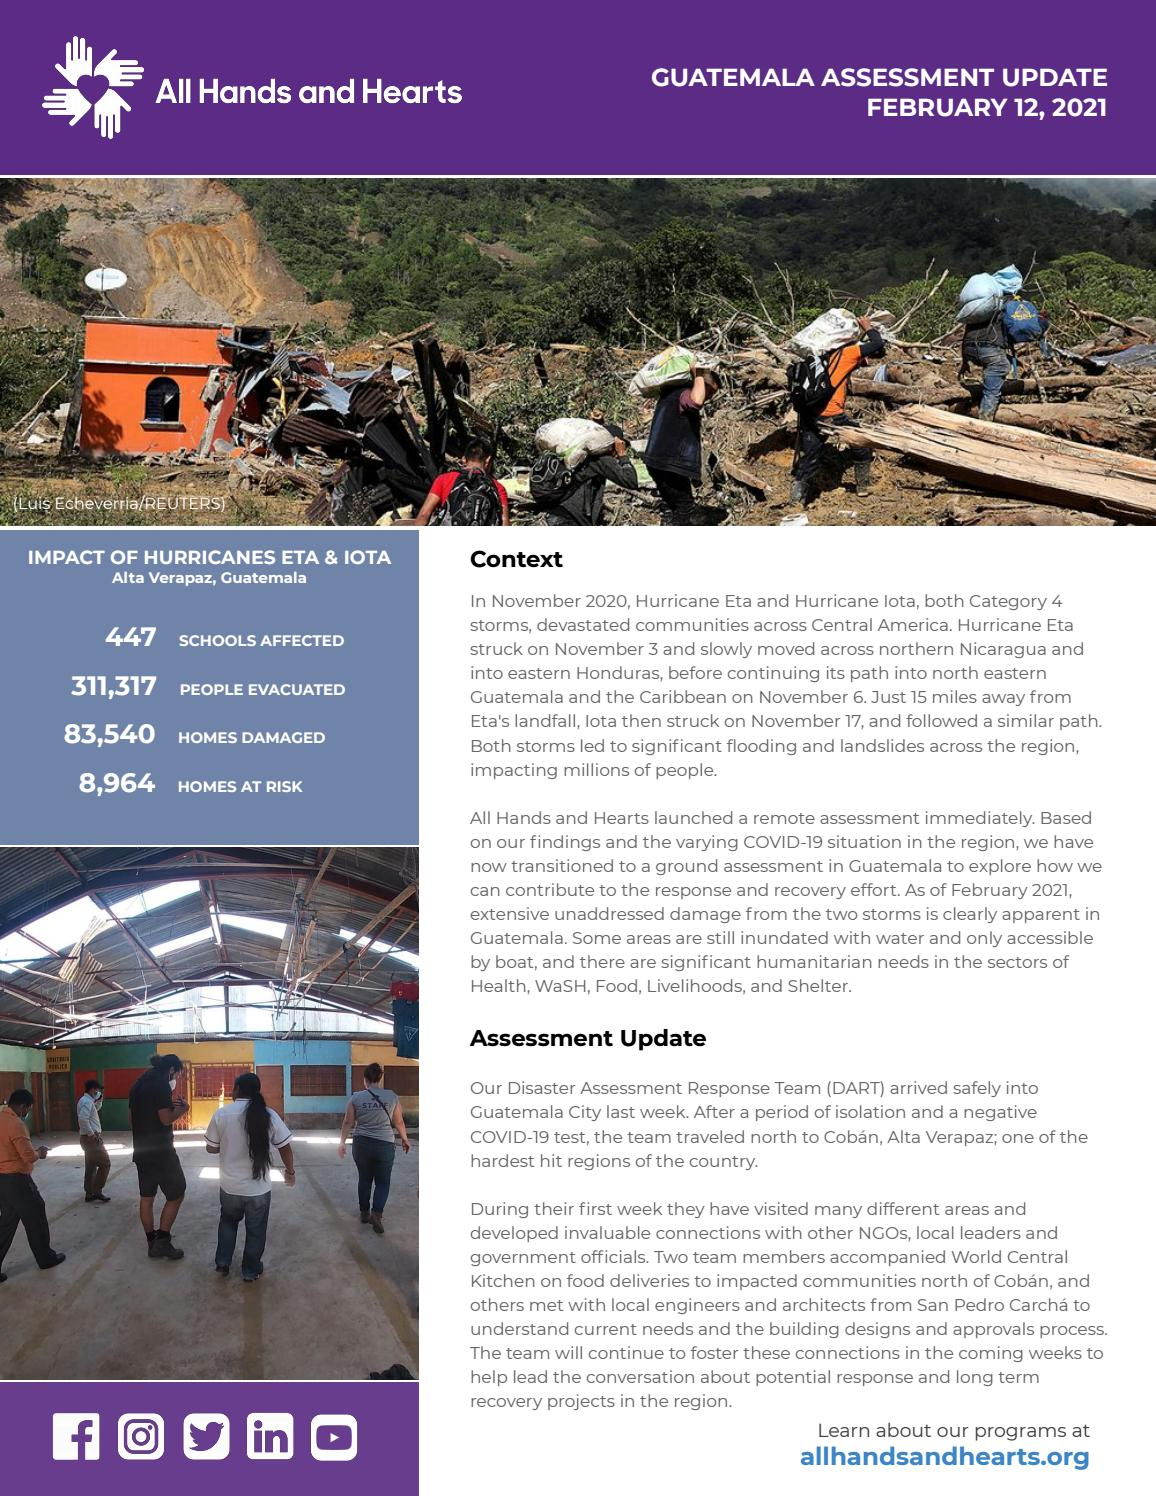 Ahah Guatemala Assessment Update 1 By All Hands And Hearts Issuu